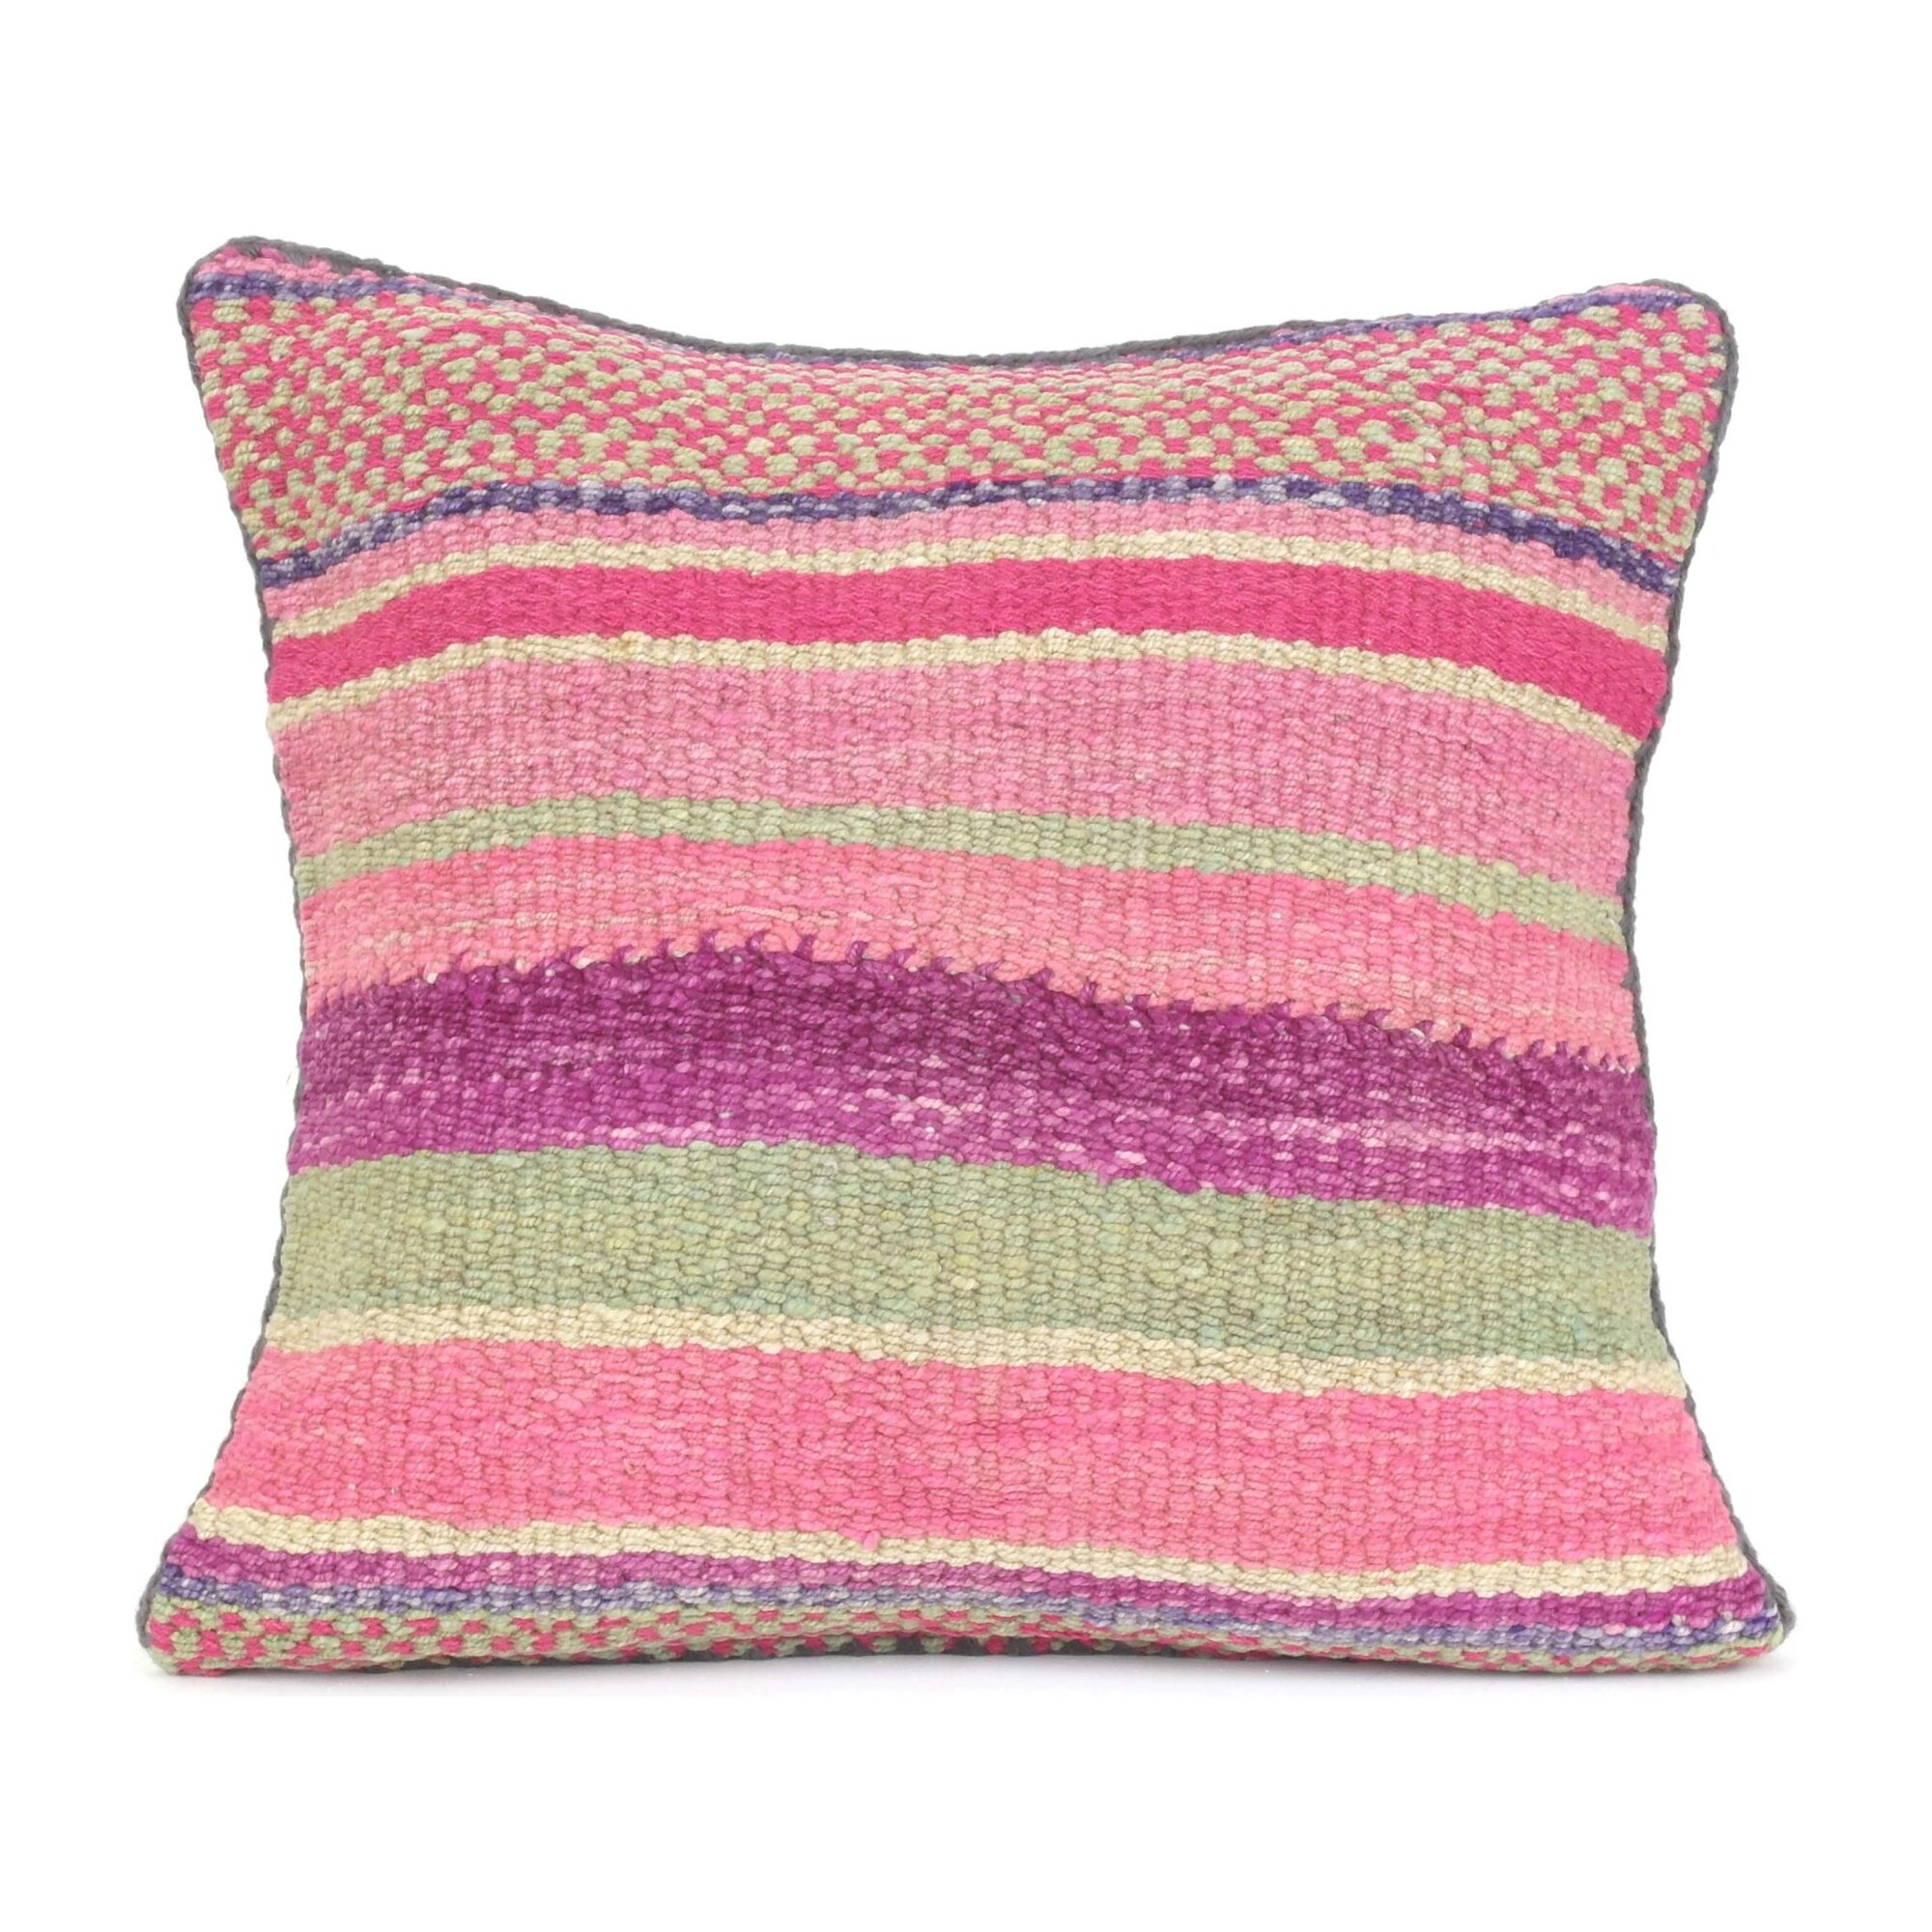 Heirloom Square Pillow Checked Pastel Home Decor Decorative Pillows Throws Maisonette